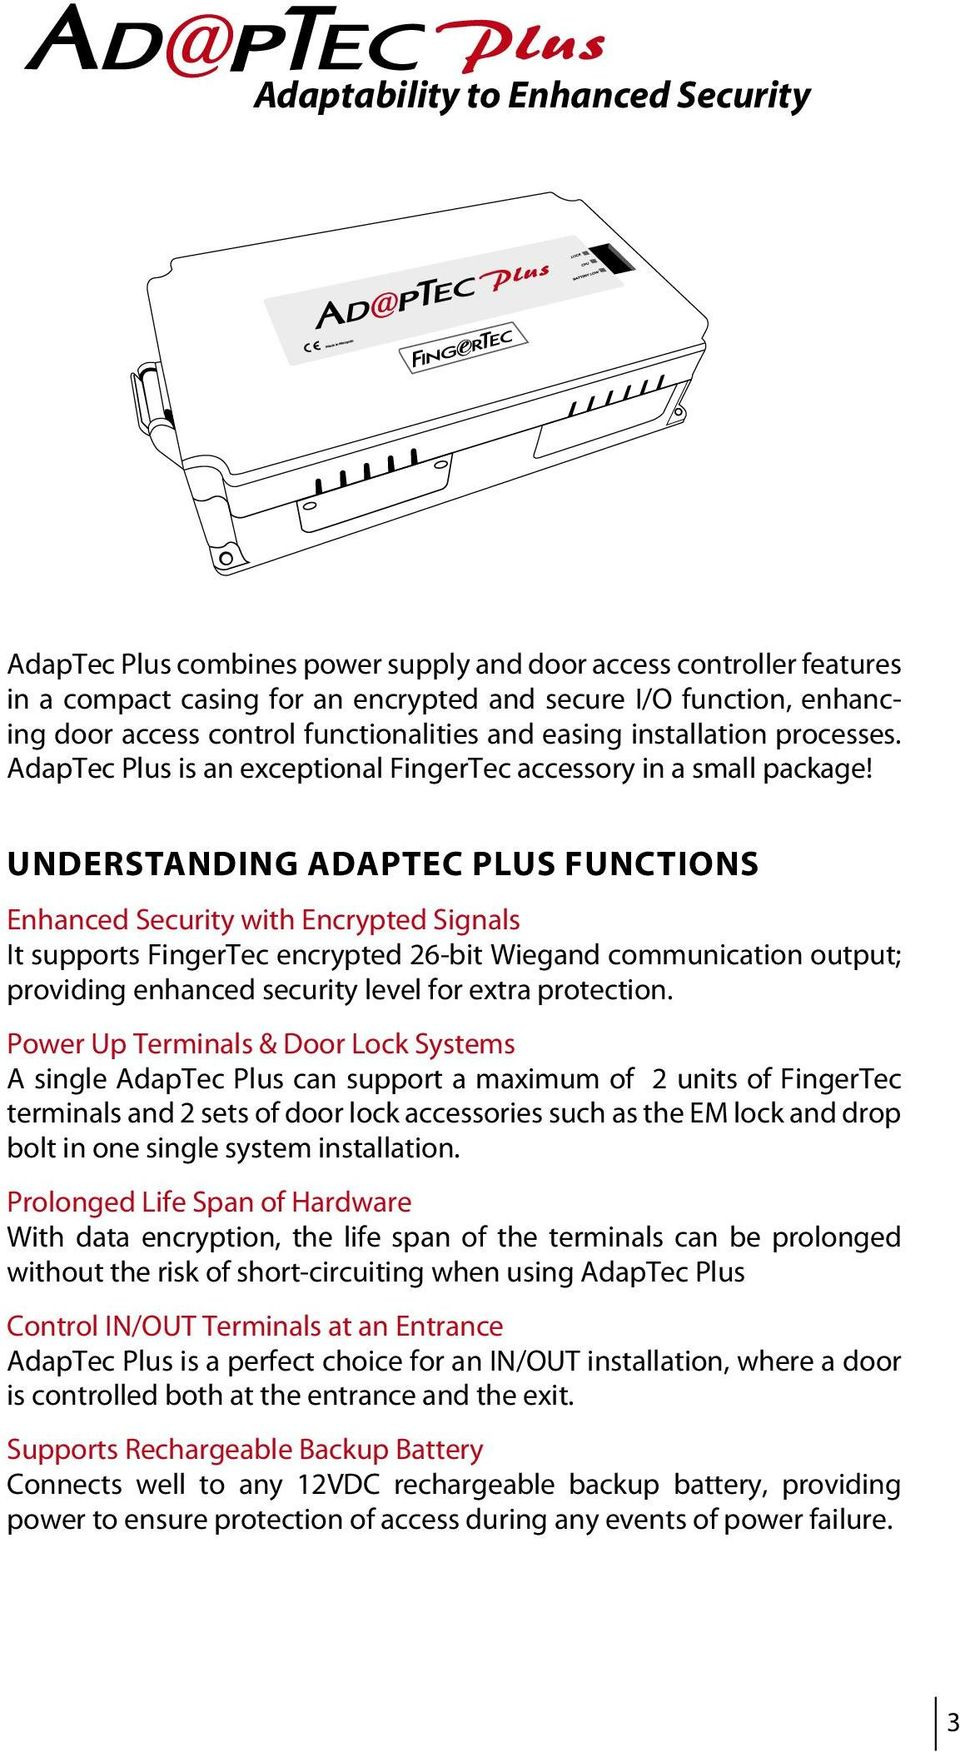 understanding adaptec plus FUNCTIONS Enhanced Security with Encrypted Signals It supports FingerTec encrypted 6-bit Wiegand communication output; providing enhanced security level for extra